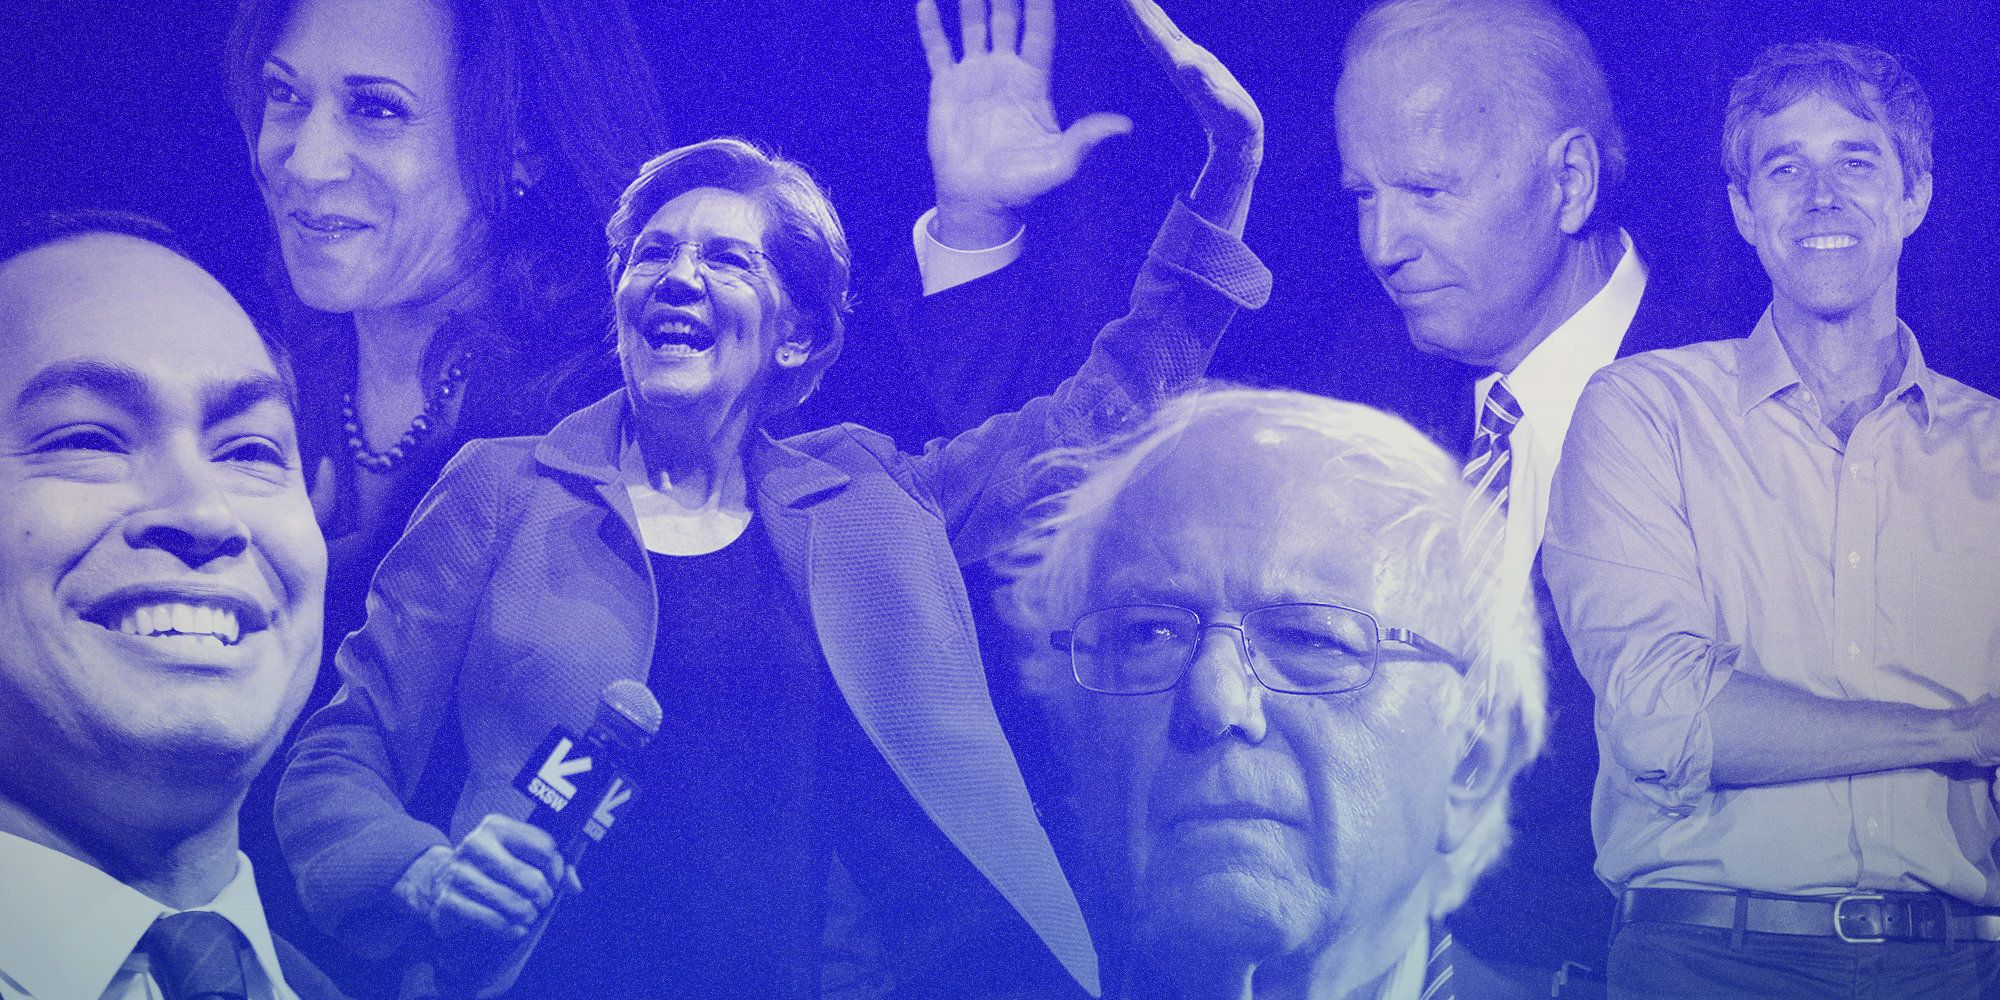 The 2020 candidates are vying to be the most electable person.